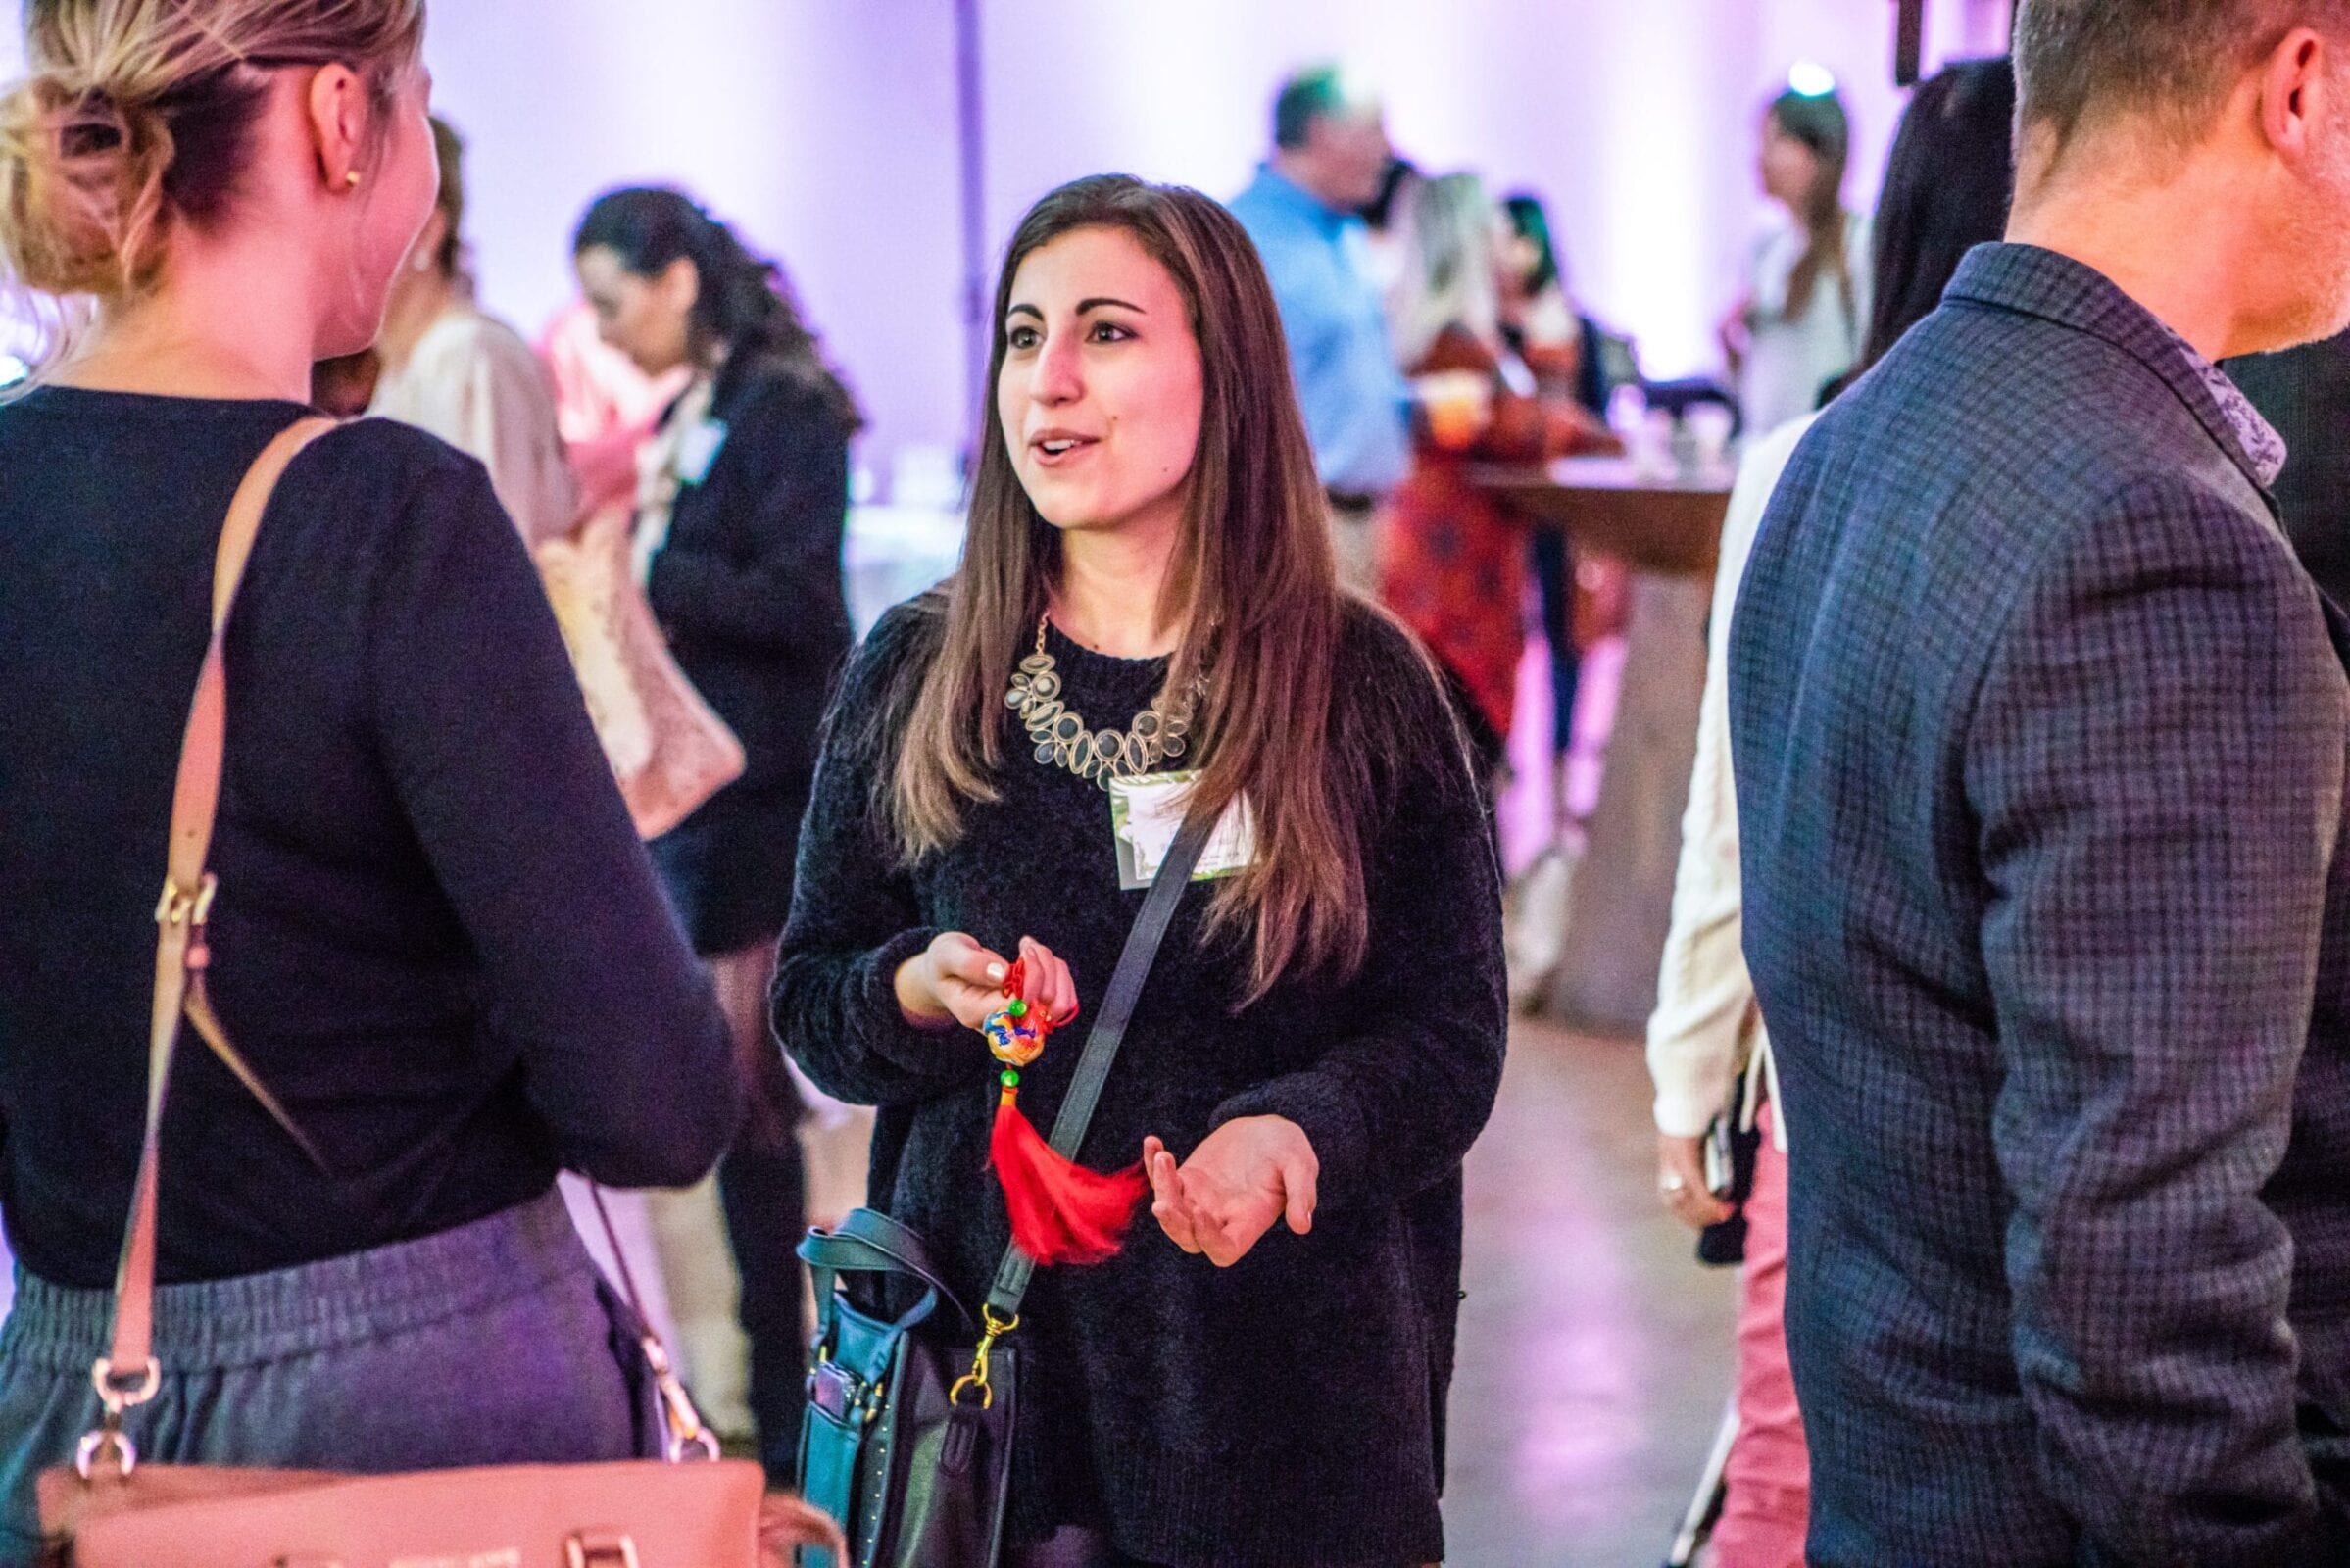 Join the District Bliss Vendor Social, a light-hearted, welcoming, casual networking event